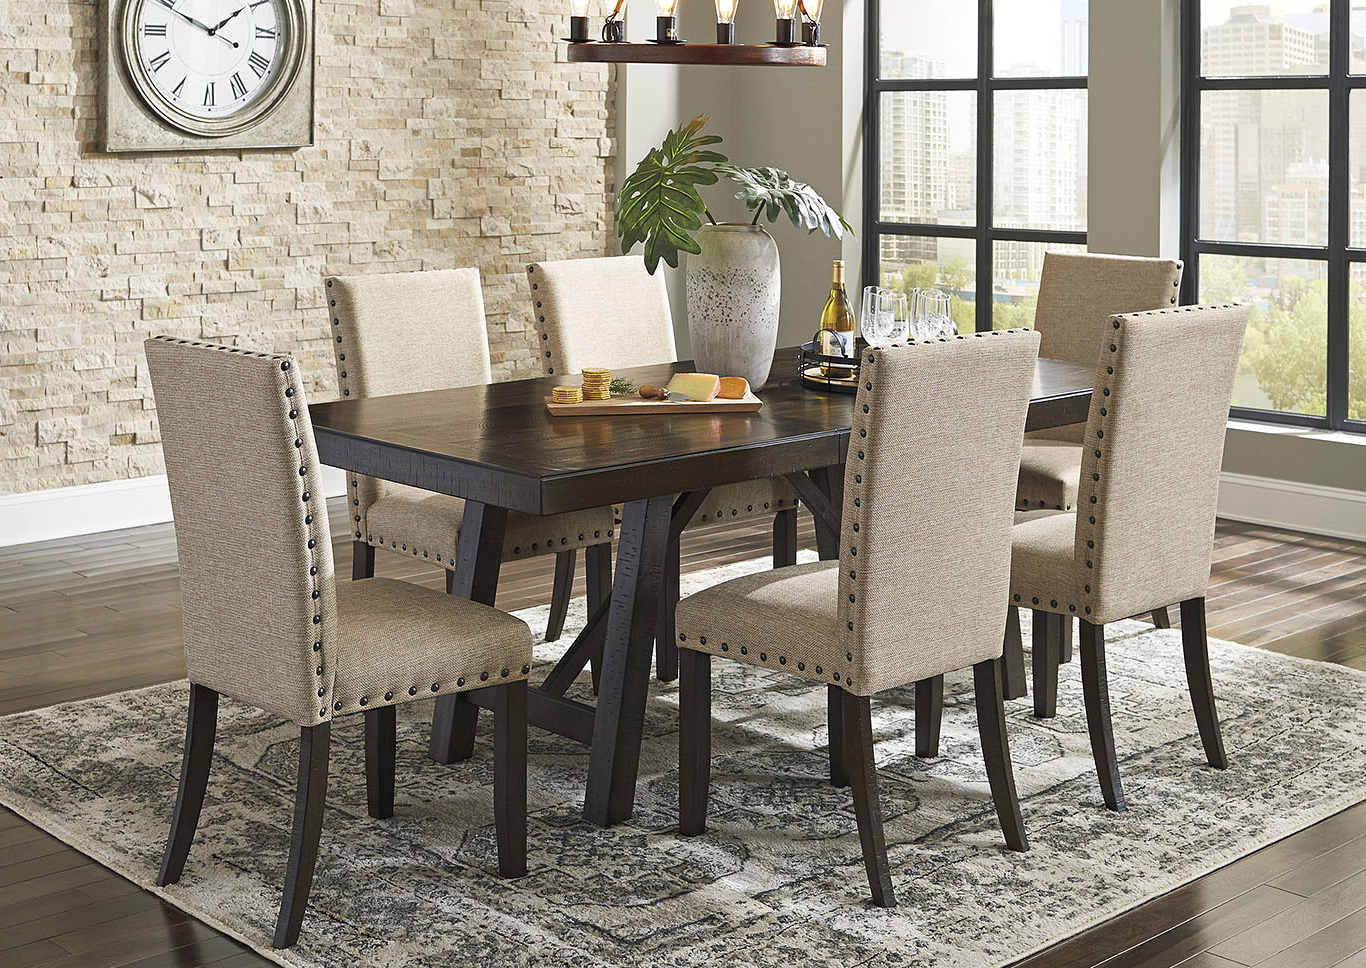 2020 Transitional 6 Seating Casual Dining Tables Intended For Bargain Furniture & Appliances – Mi Rokane Light Brown (View 1 of 25)